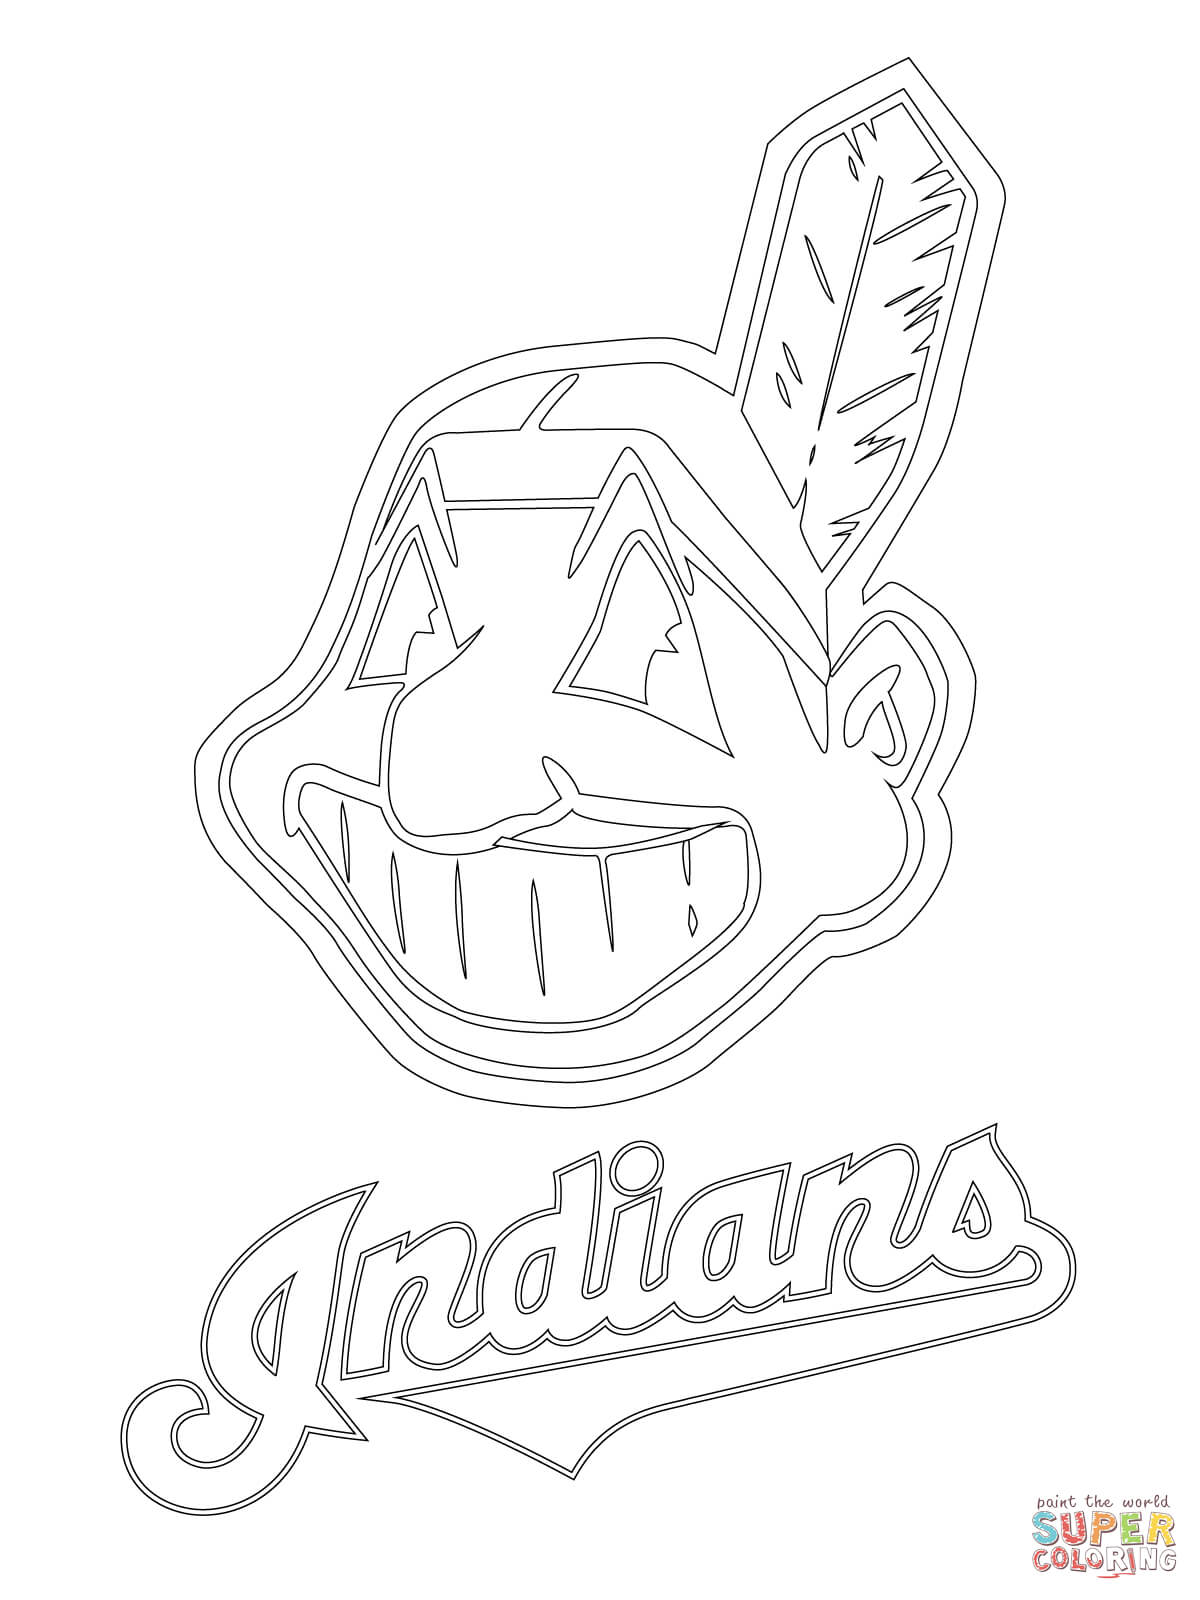 free coloring pages download clevelend indians logo coloring page free printable coloring pages of cleveland